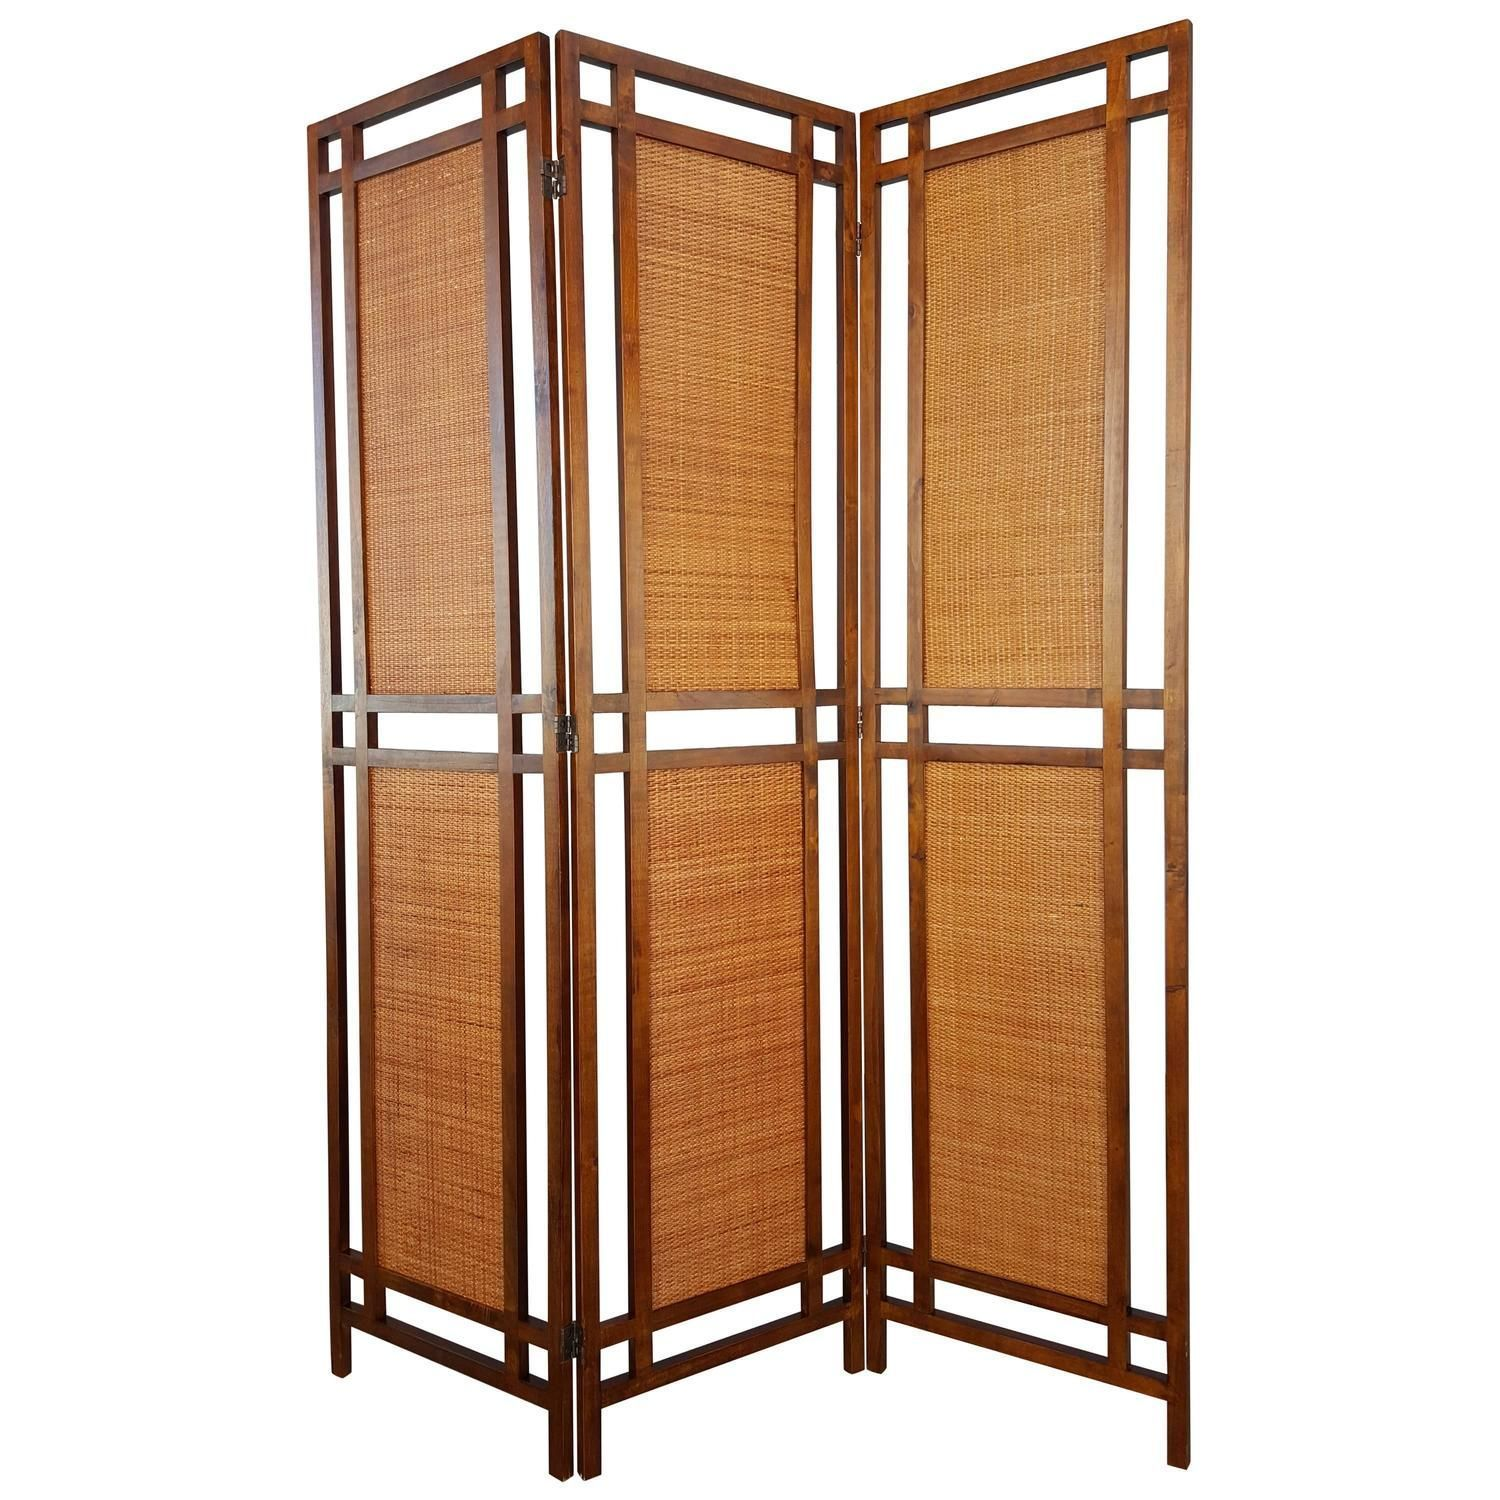 Astounding useful tips room divider entryway rugs room divider